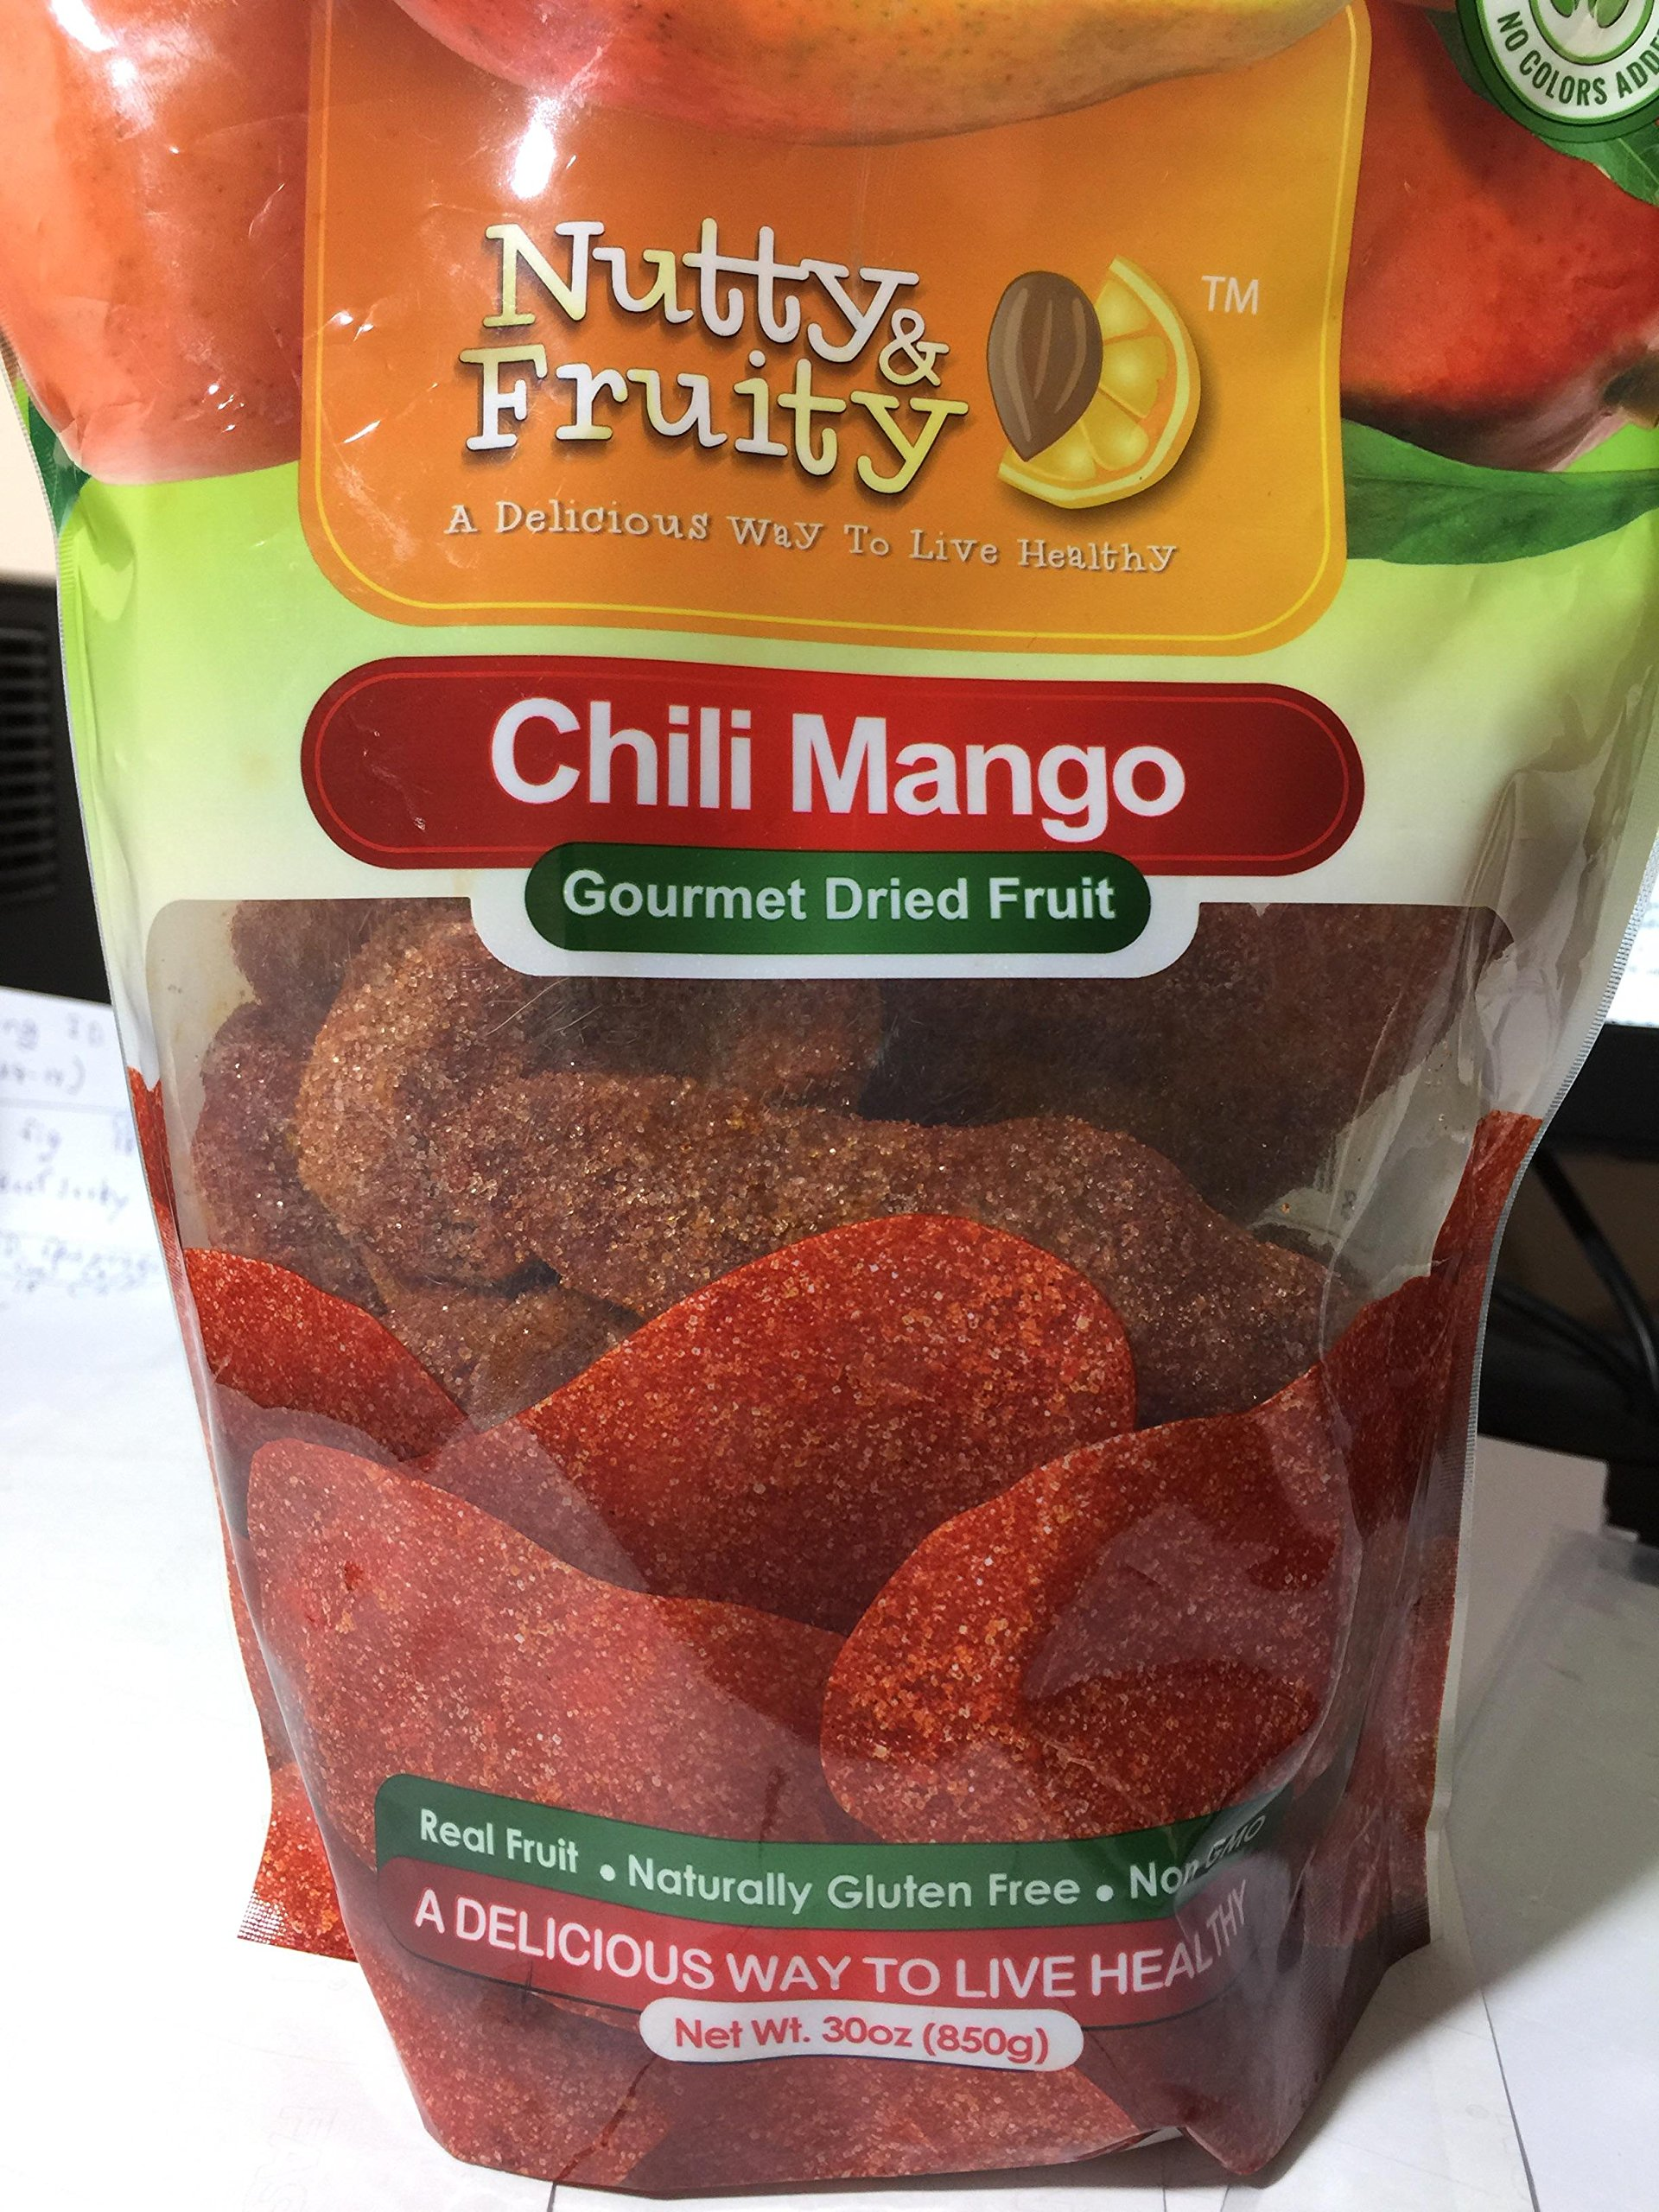 Nutty & fruity chili mango gourmet dried fruit 30 oz. (850g)